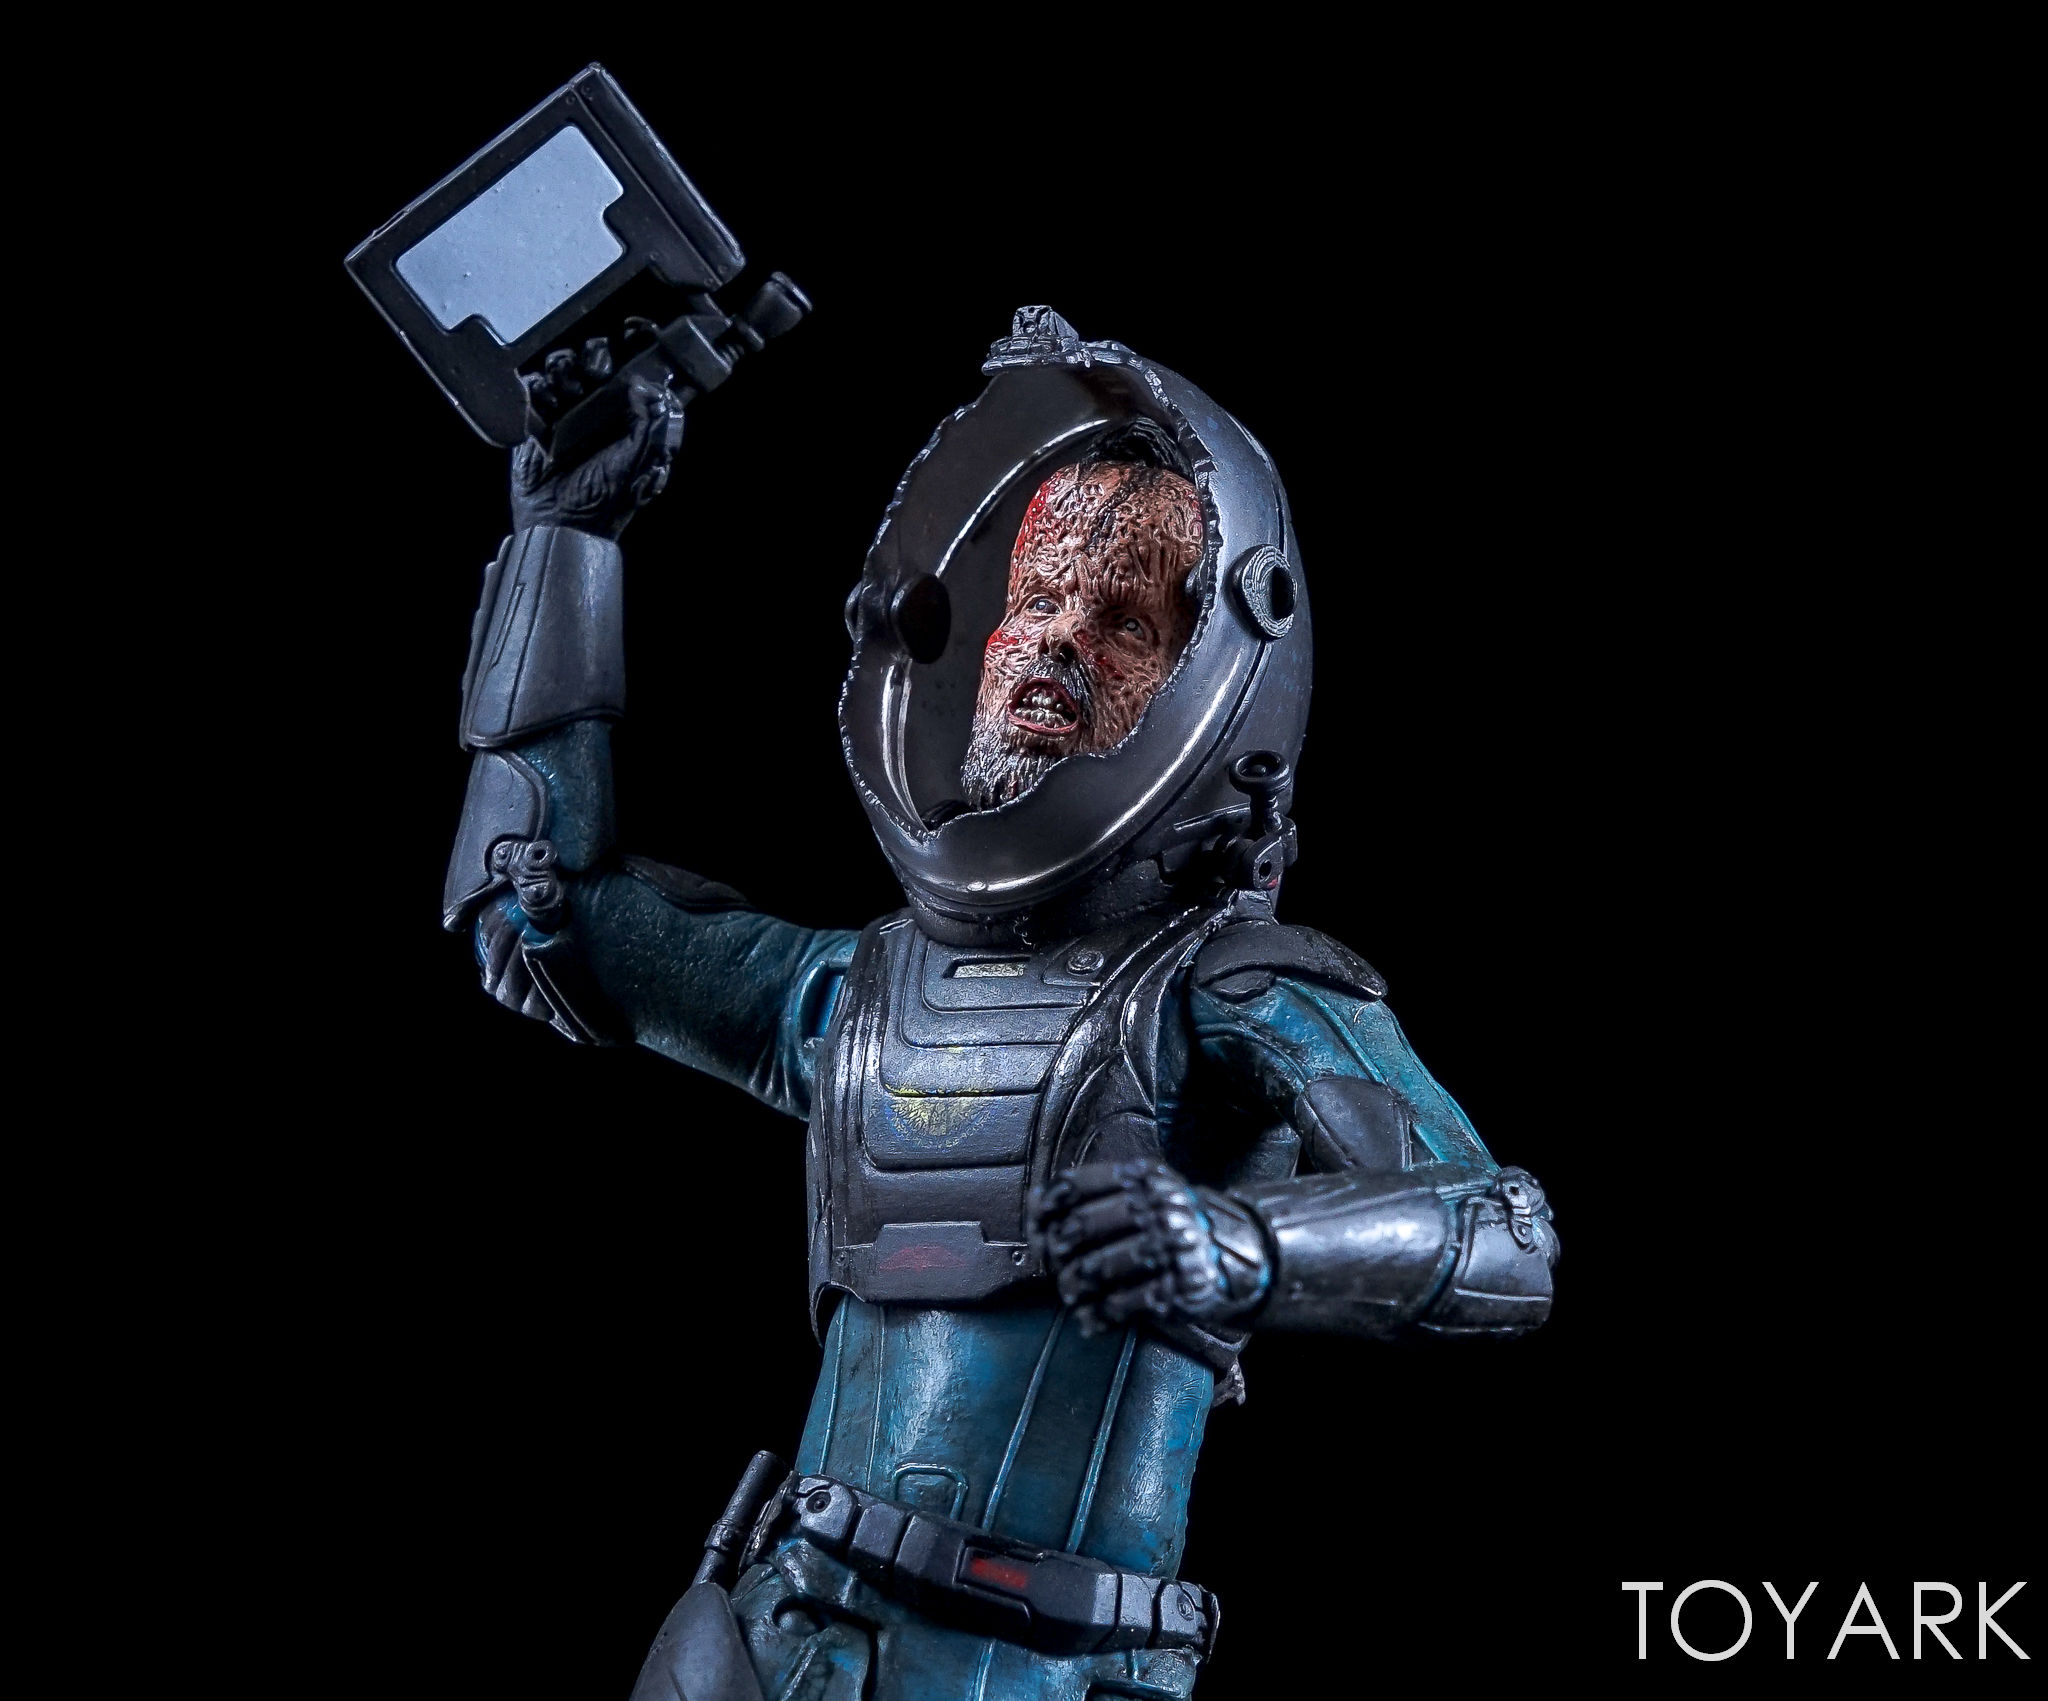 http://news.toyark.com/wp-content/uploads/sites/4/2017/06/NECA-Prometheus-Lost-Wave-051.jpg